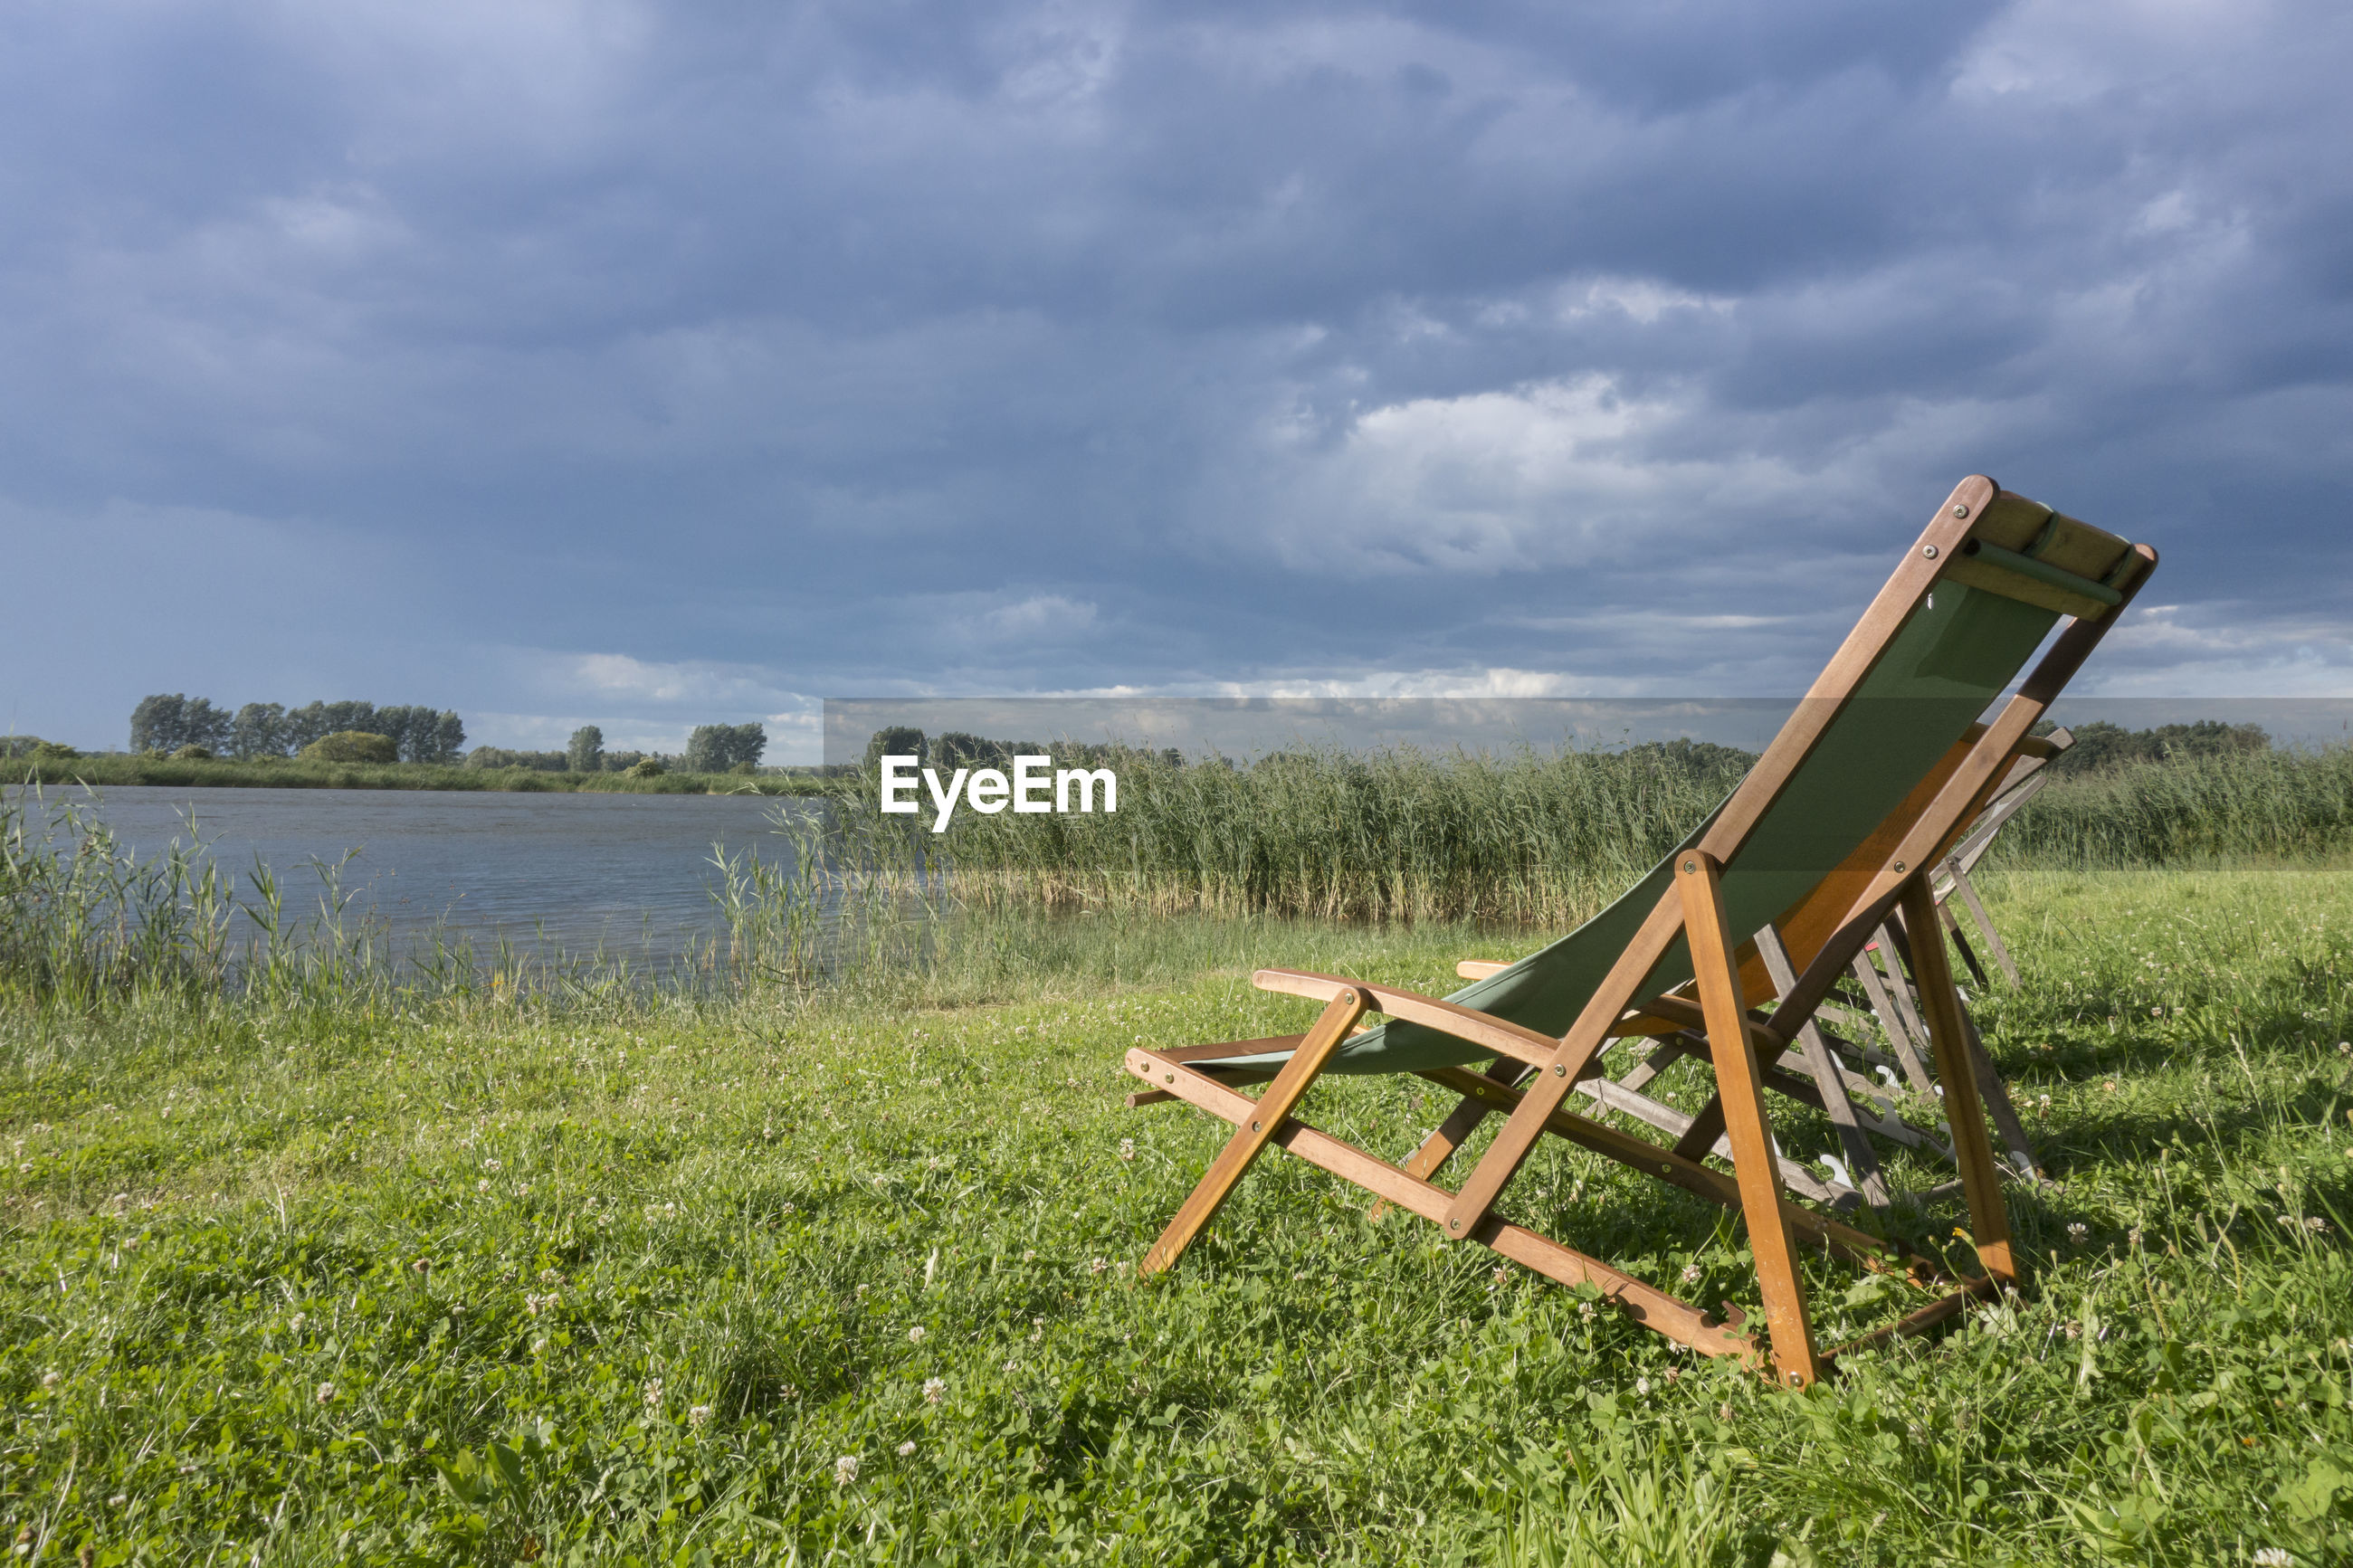 VIEW OF CHAIRS ON GRASSY FIELD AGAINST SKY